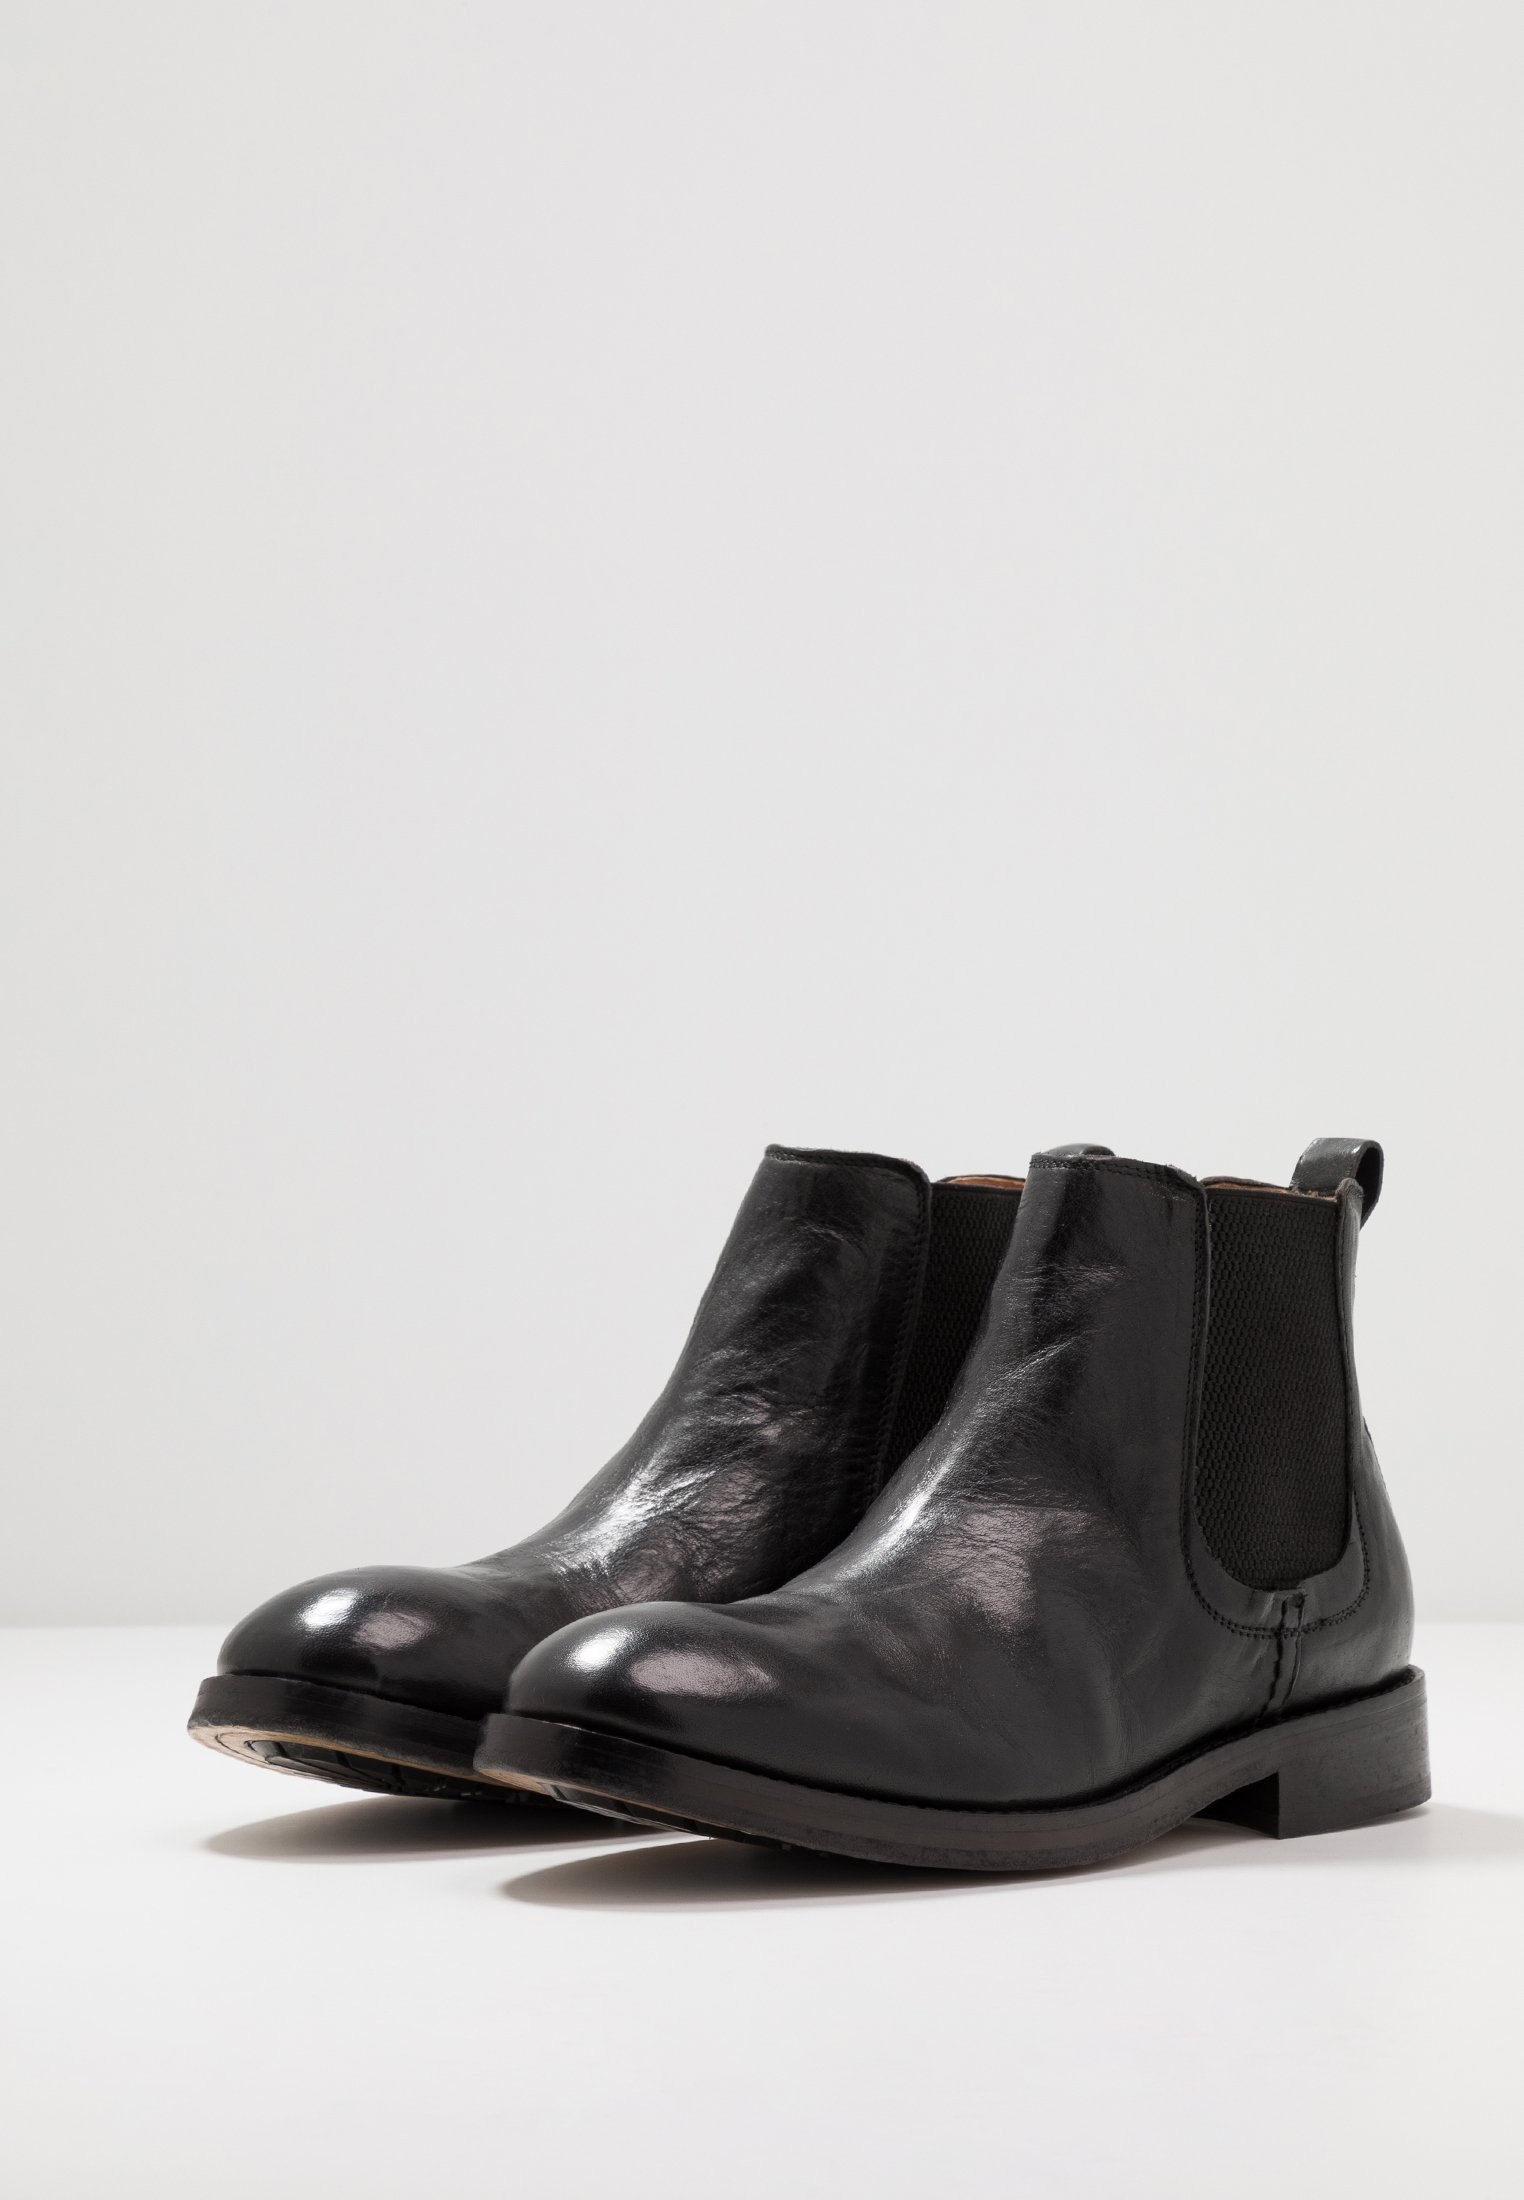 Offer Cheapest Hudson London WISTMAN - Classic ankle boots - black | men's shoes 2020 SM6k5